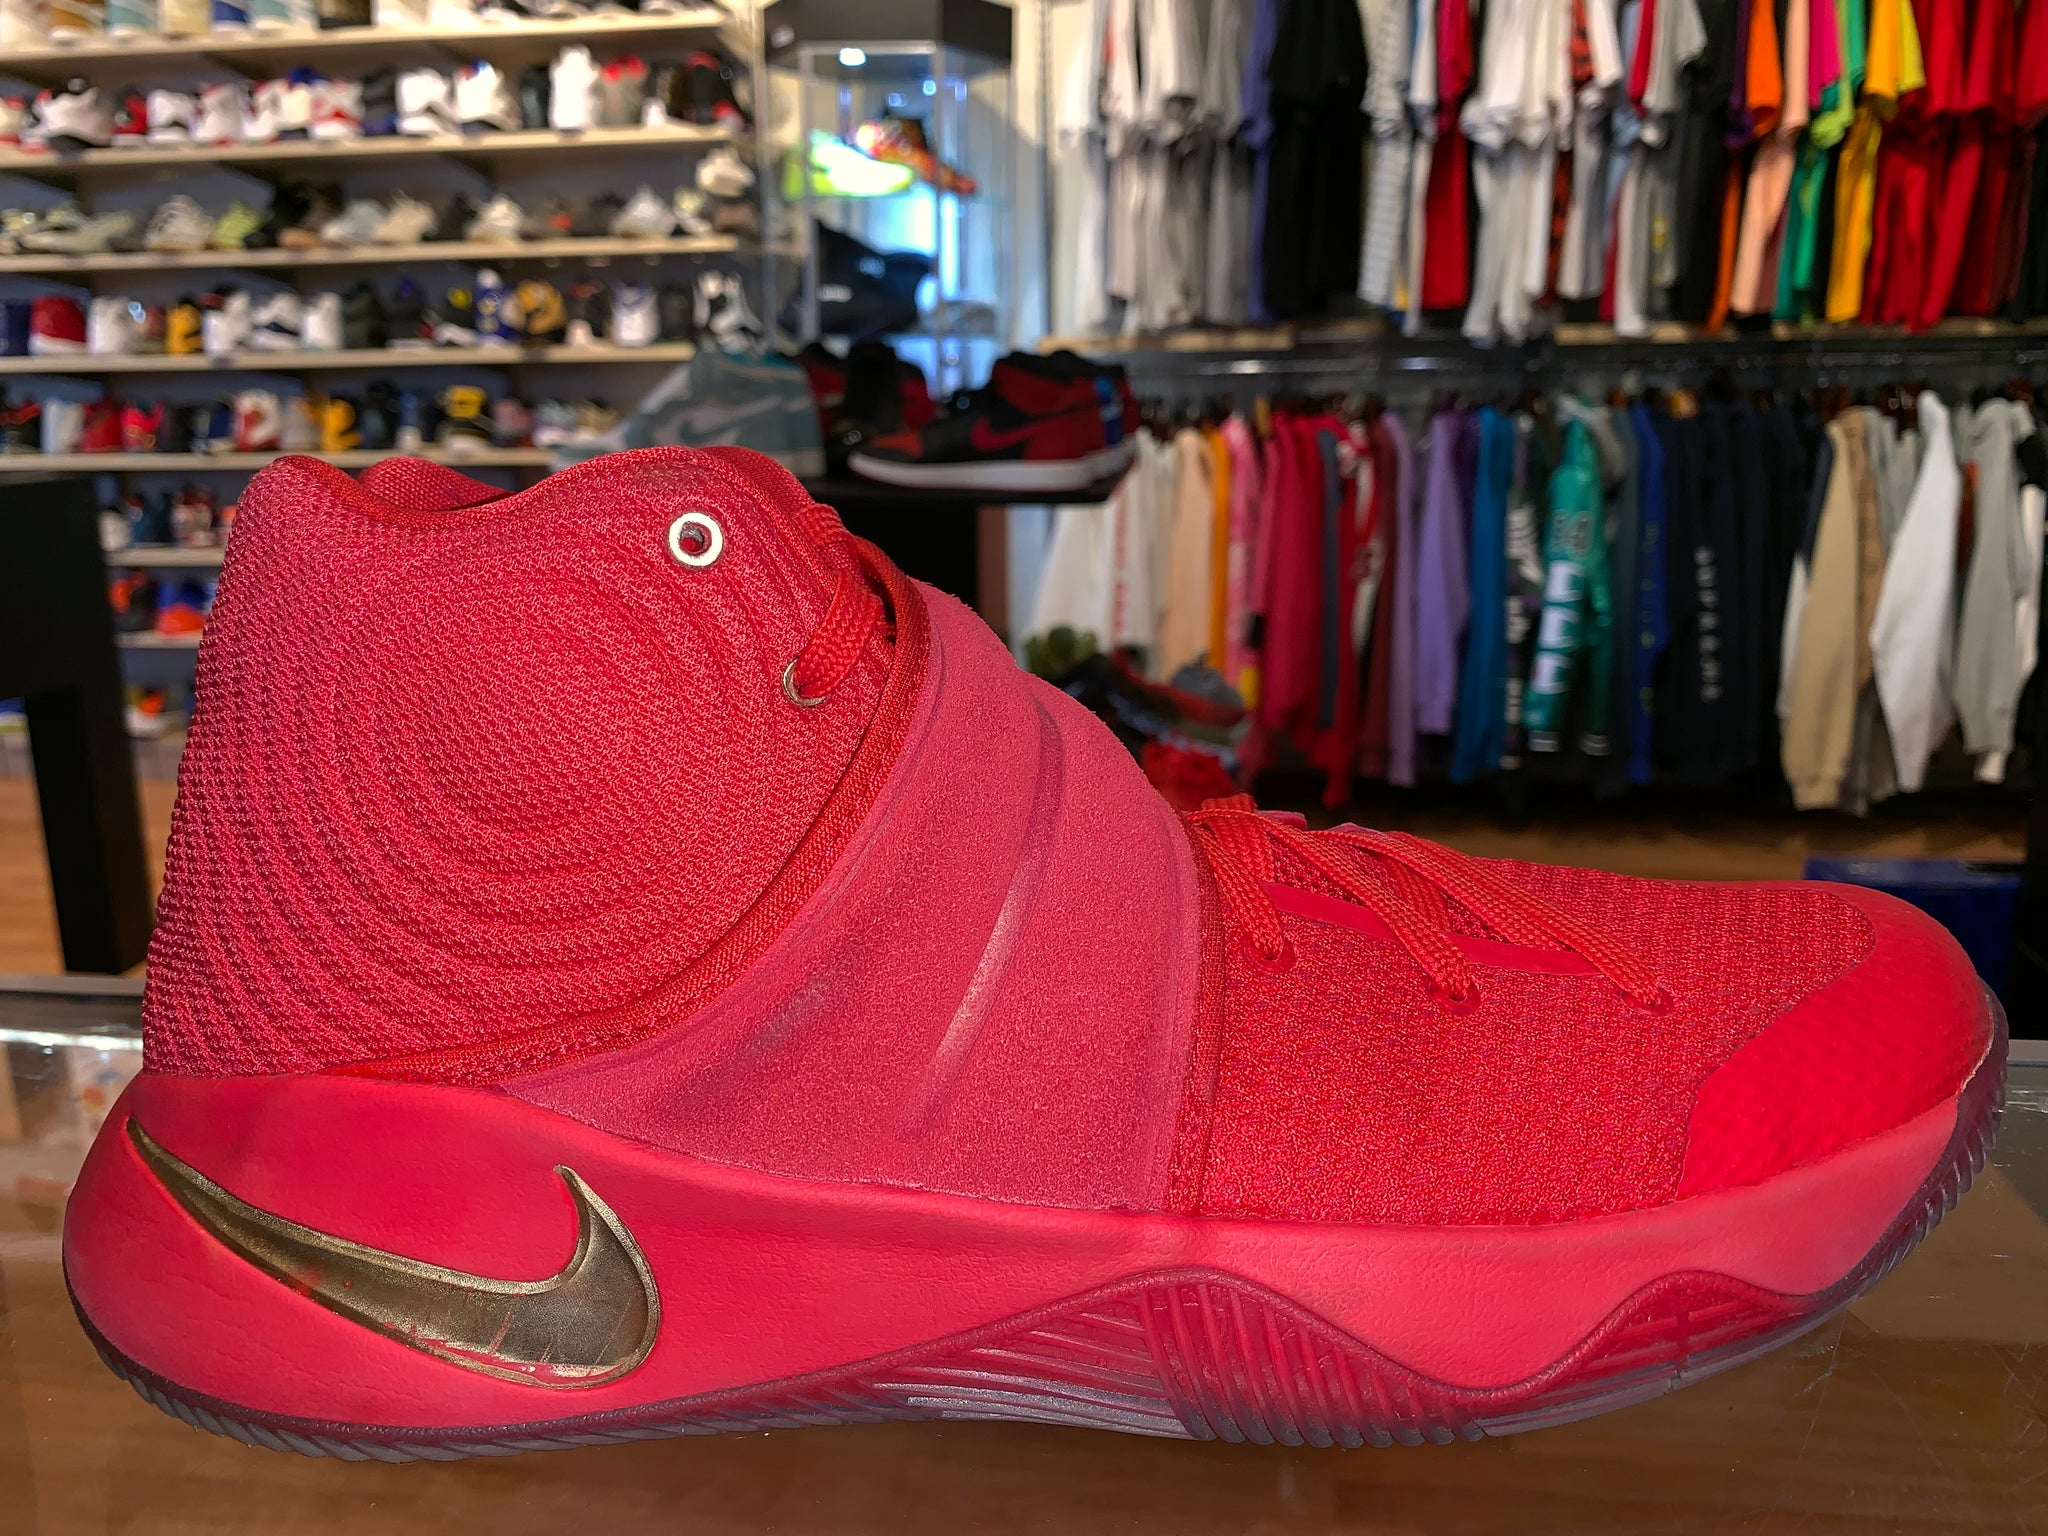 new style 0193b 80612 Size 12 Kyrie 2